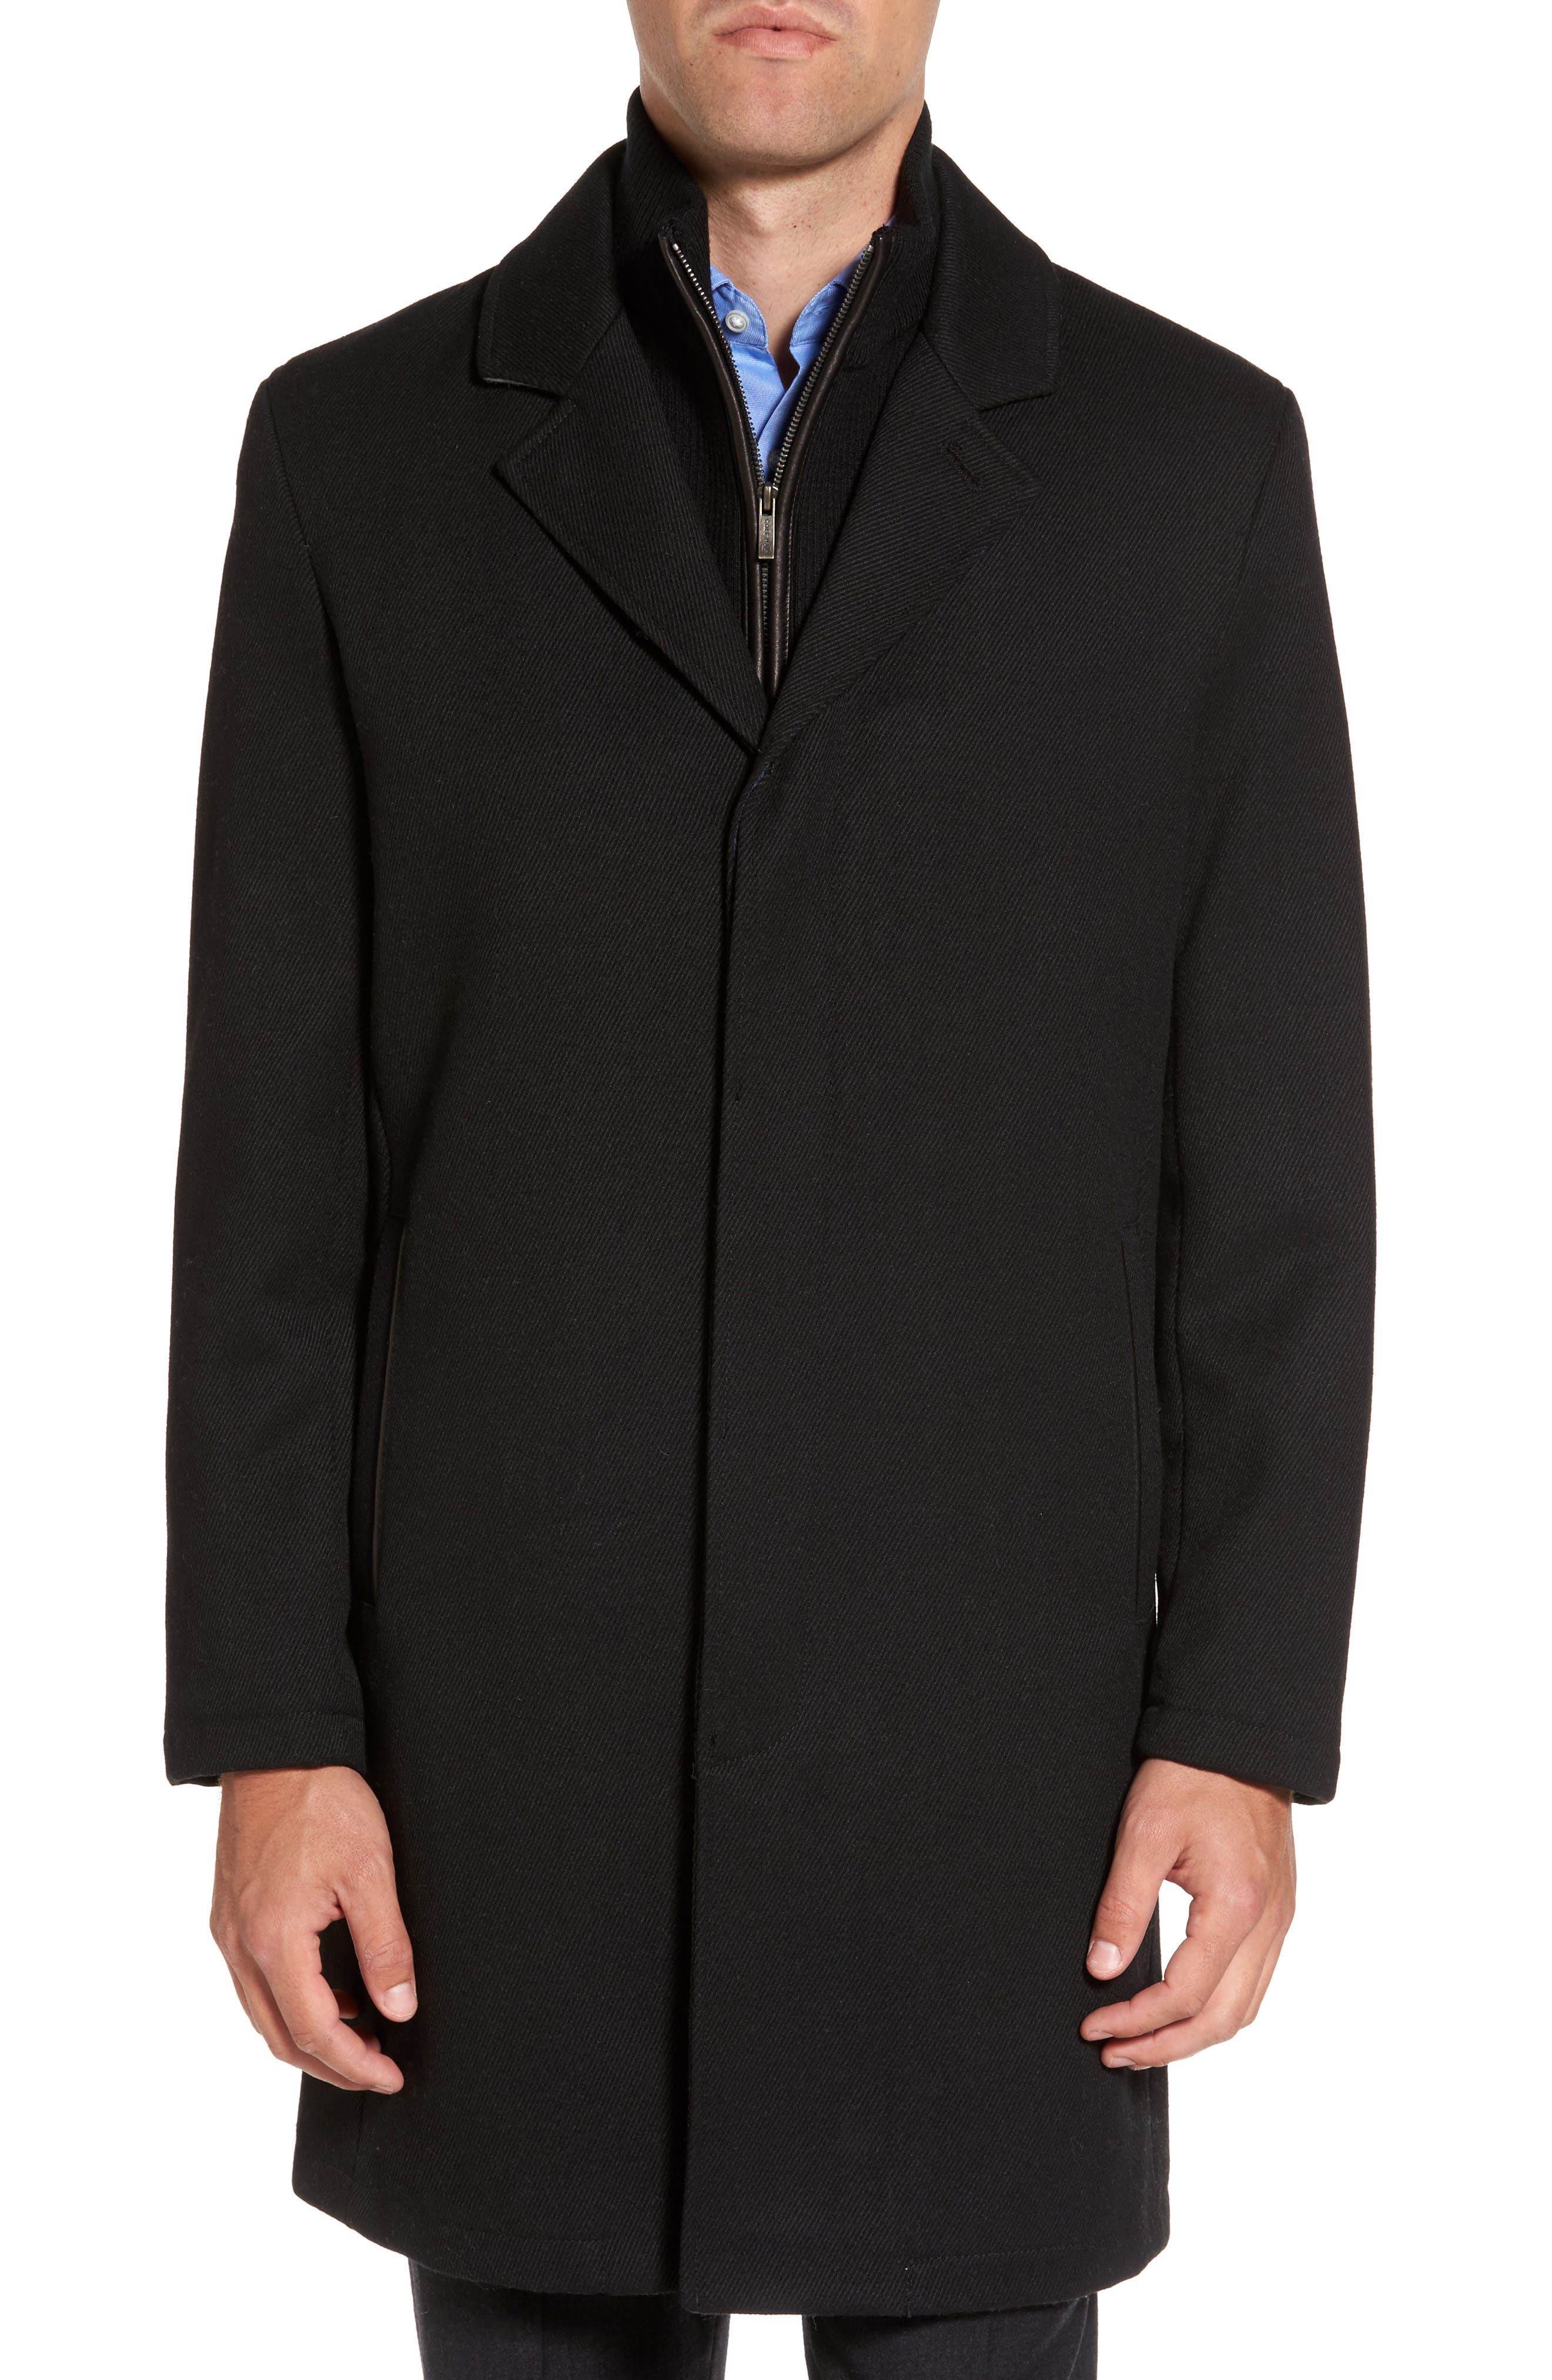 Modern Twill Topcoat with Removable Bib,                             Main thumbnail 1, color,                             Black